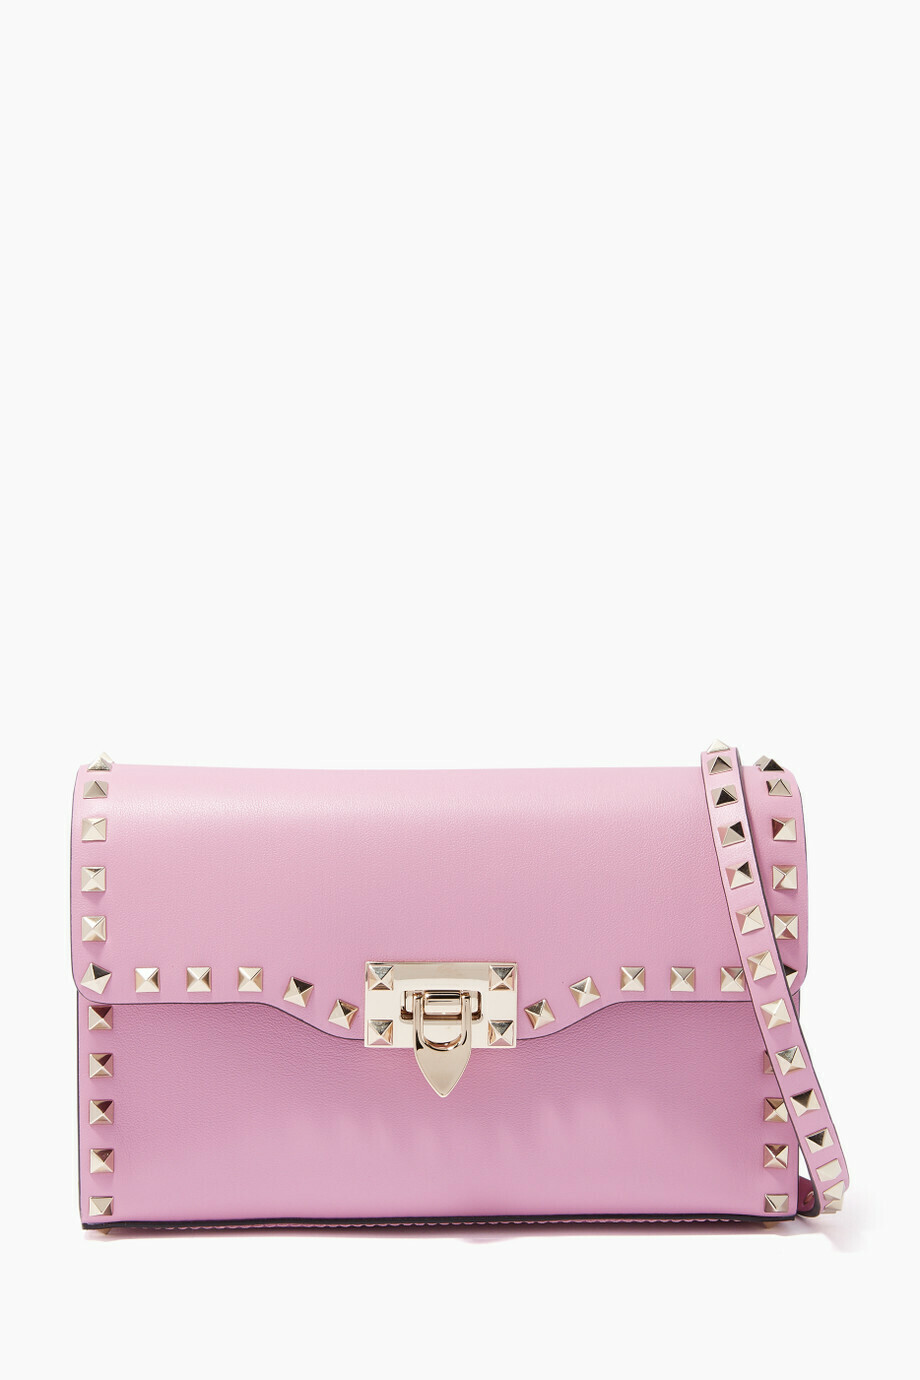 Valentino Rockstud Small Crossbody Bag Pink